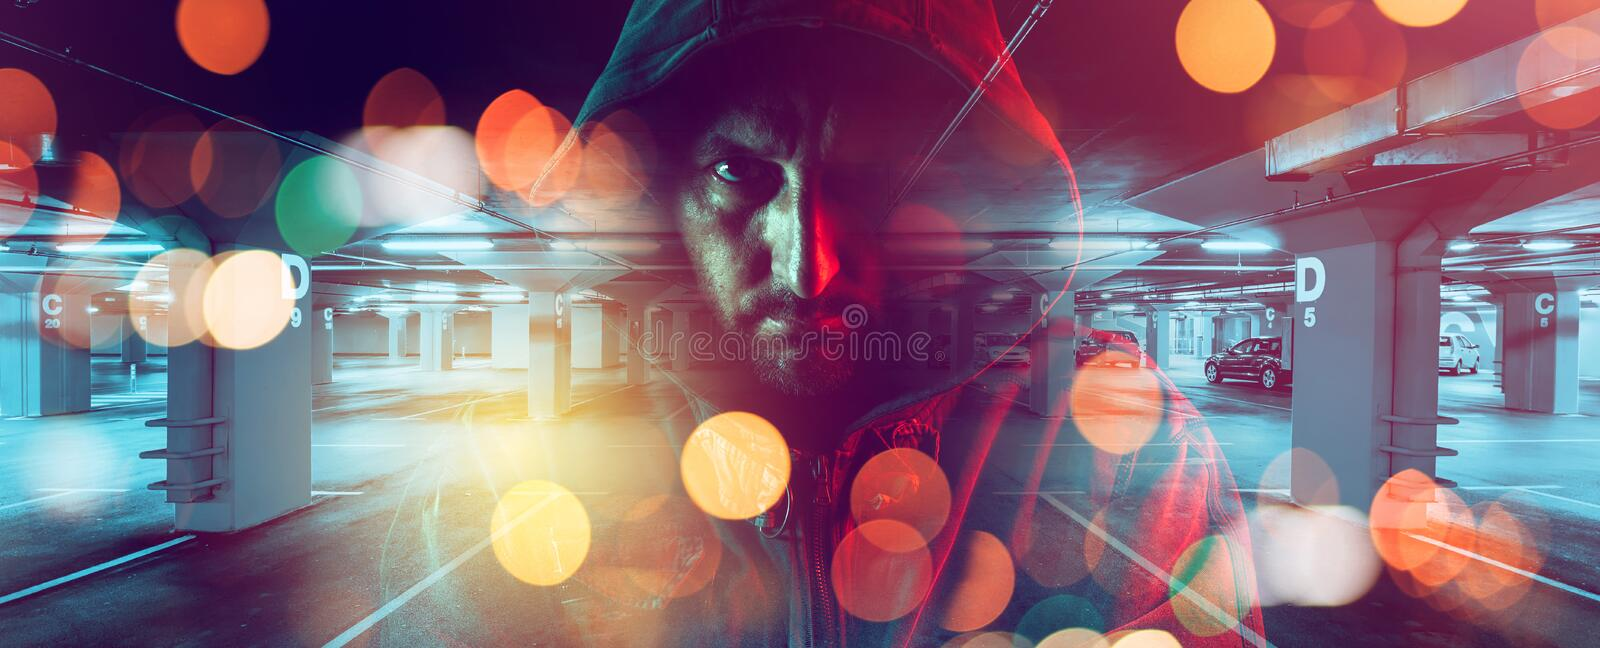 Car thief conceptual image stock images